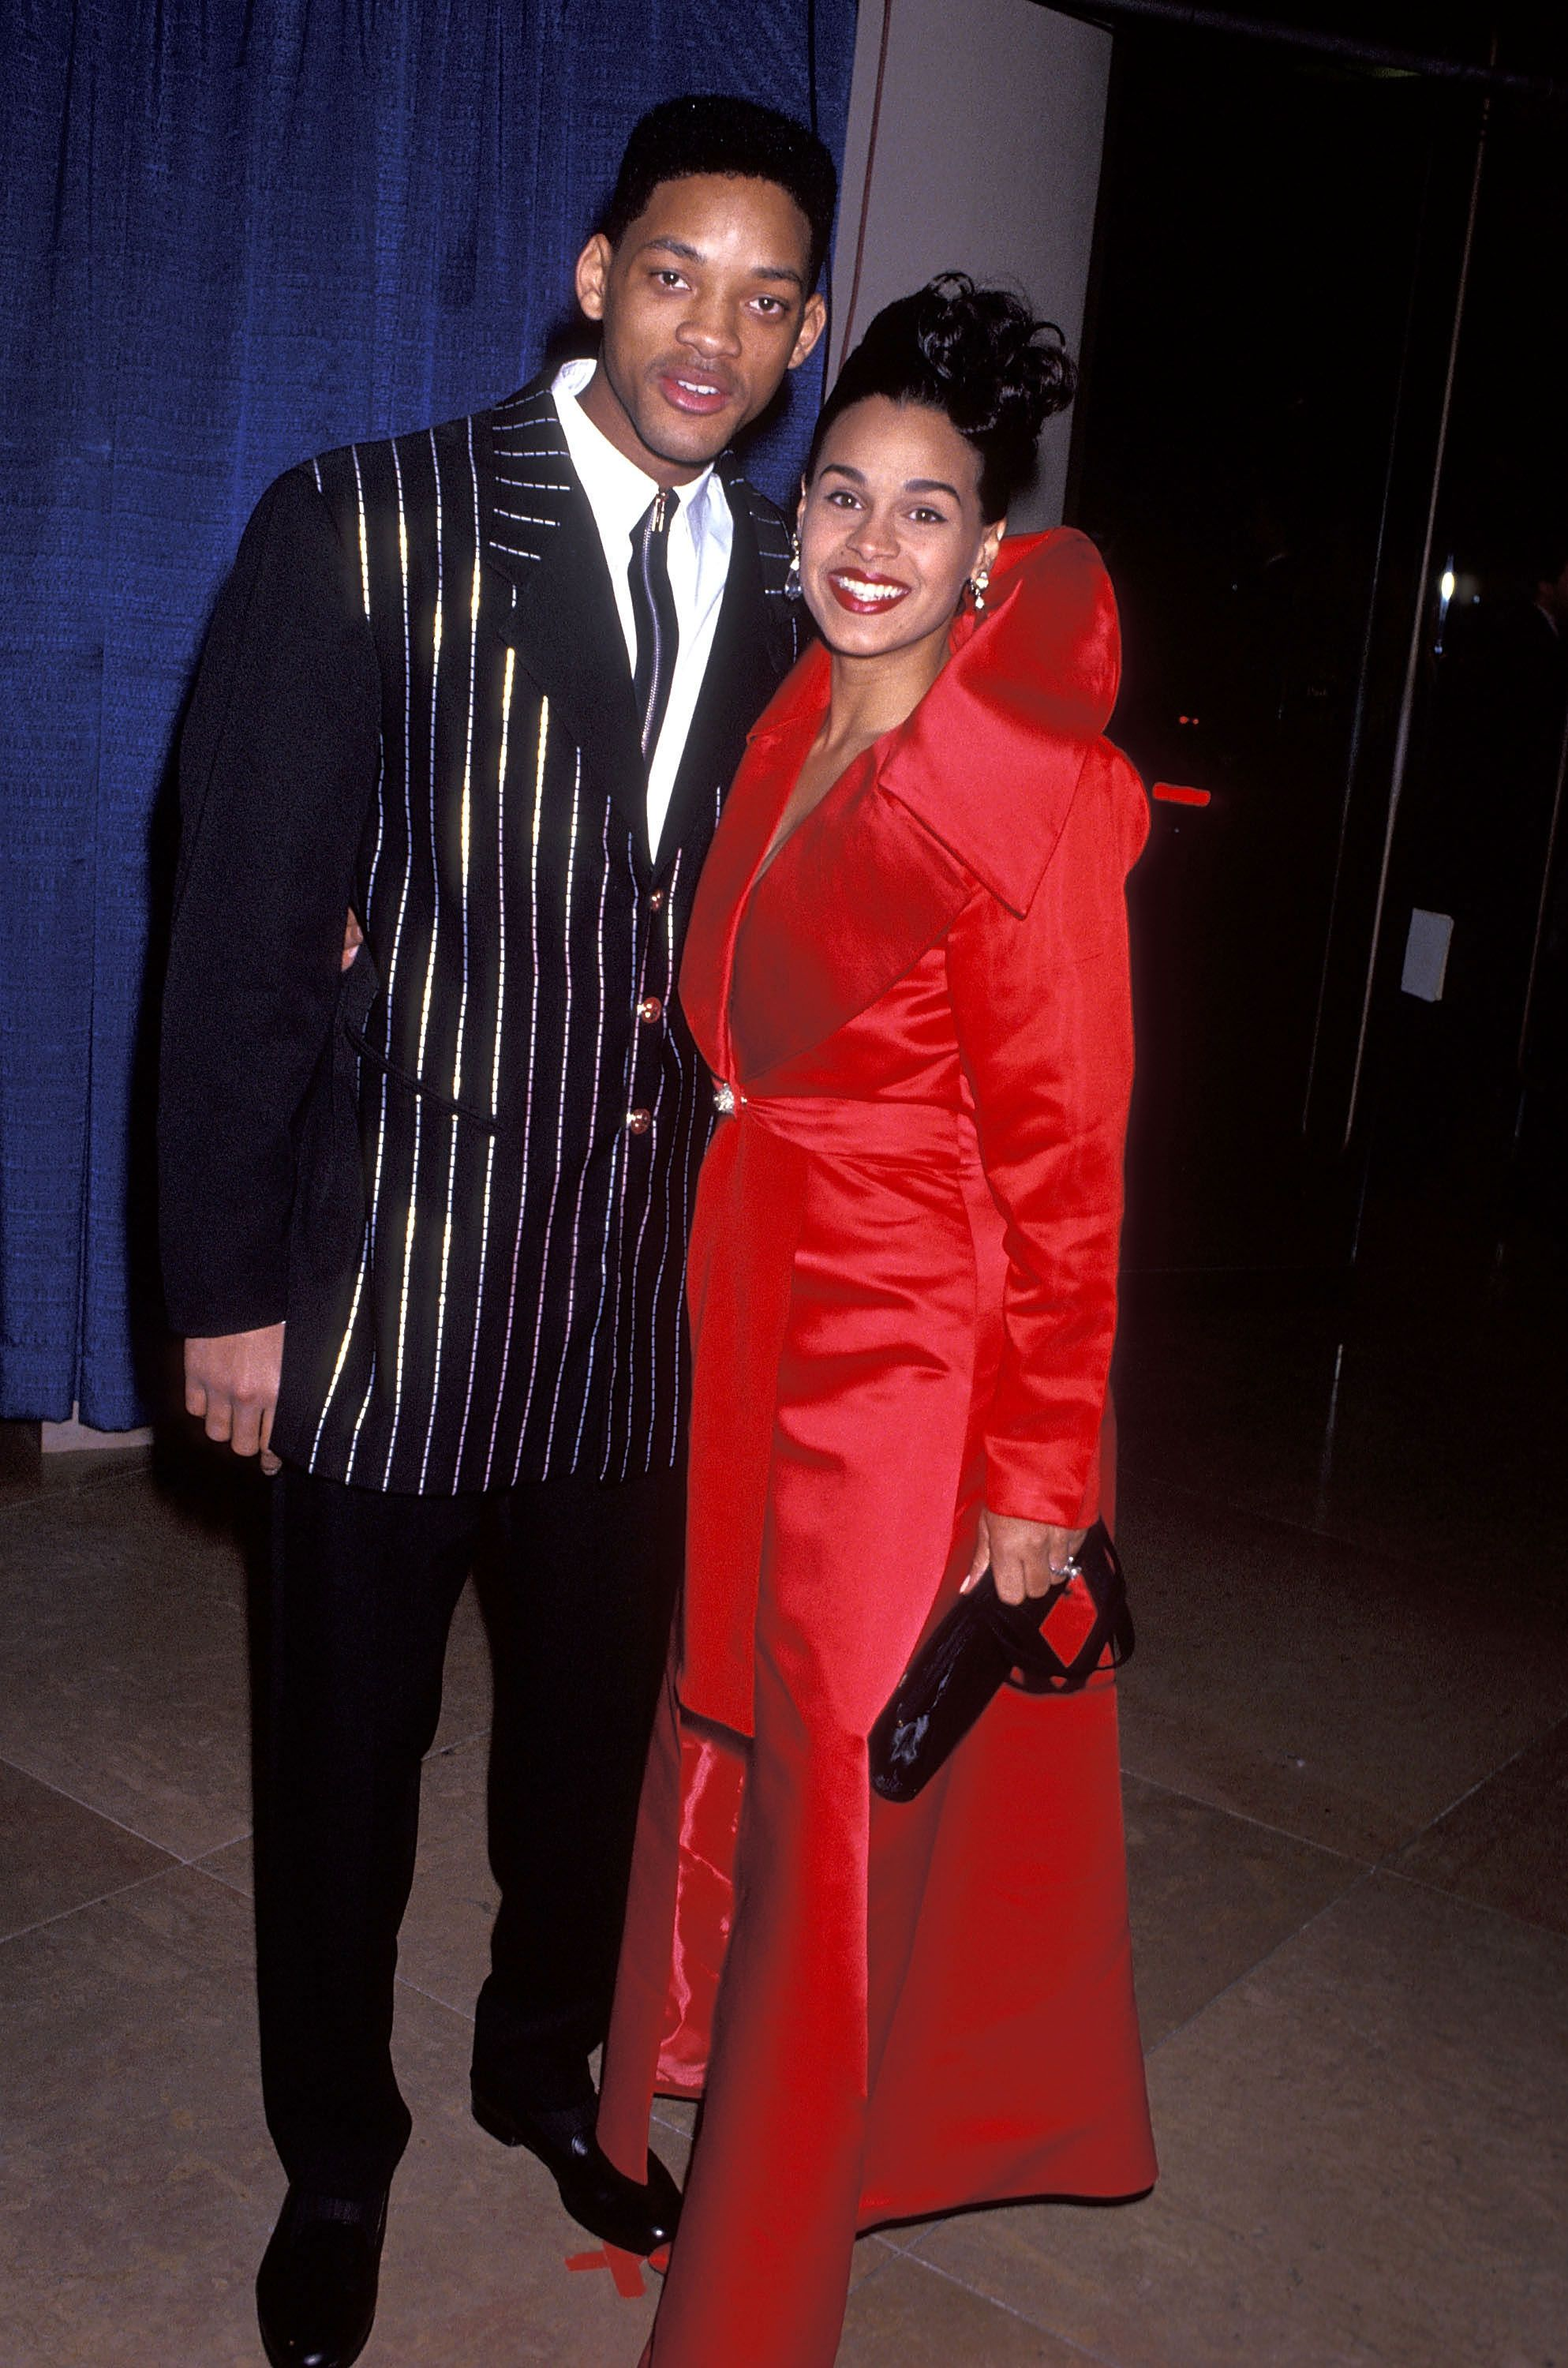 Will Smith and wife Sheree Zampino attend the 50th Annual Golden Globe Awards on January 23, 1993 at Beverly Hilton Hotel in Beverly Hills, California. | Source: Getty Images